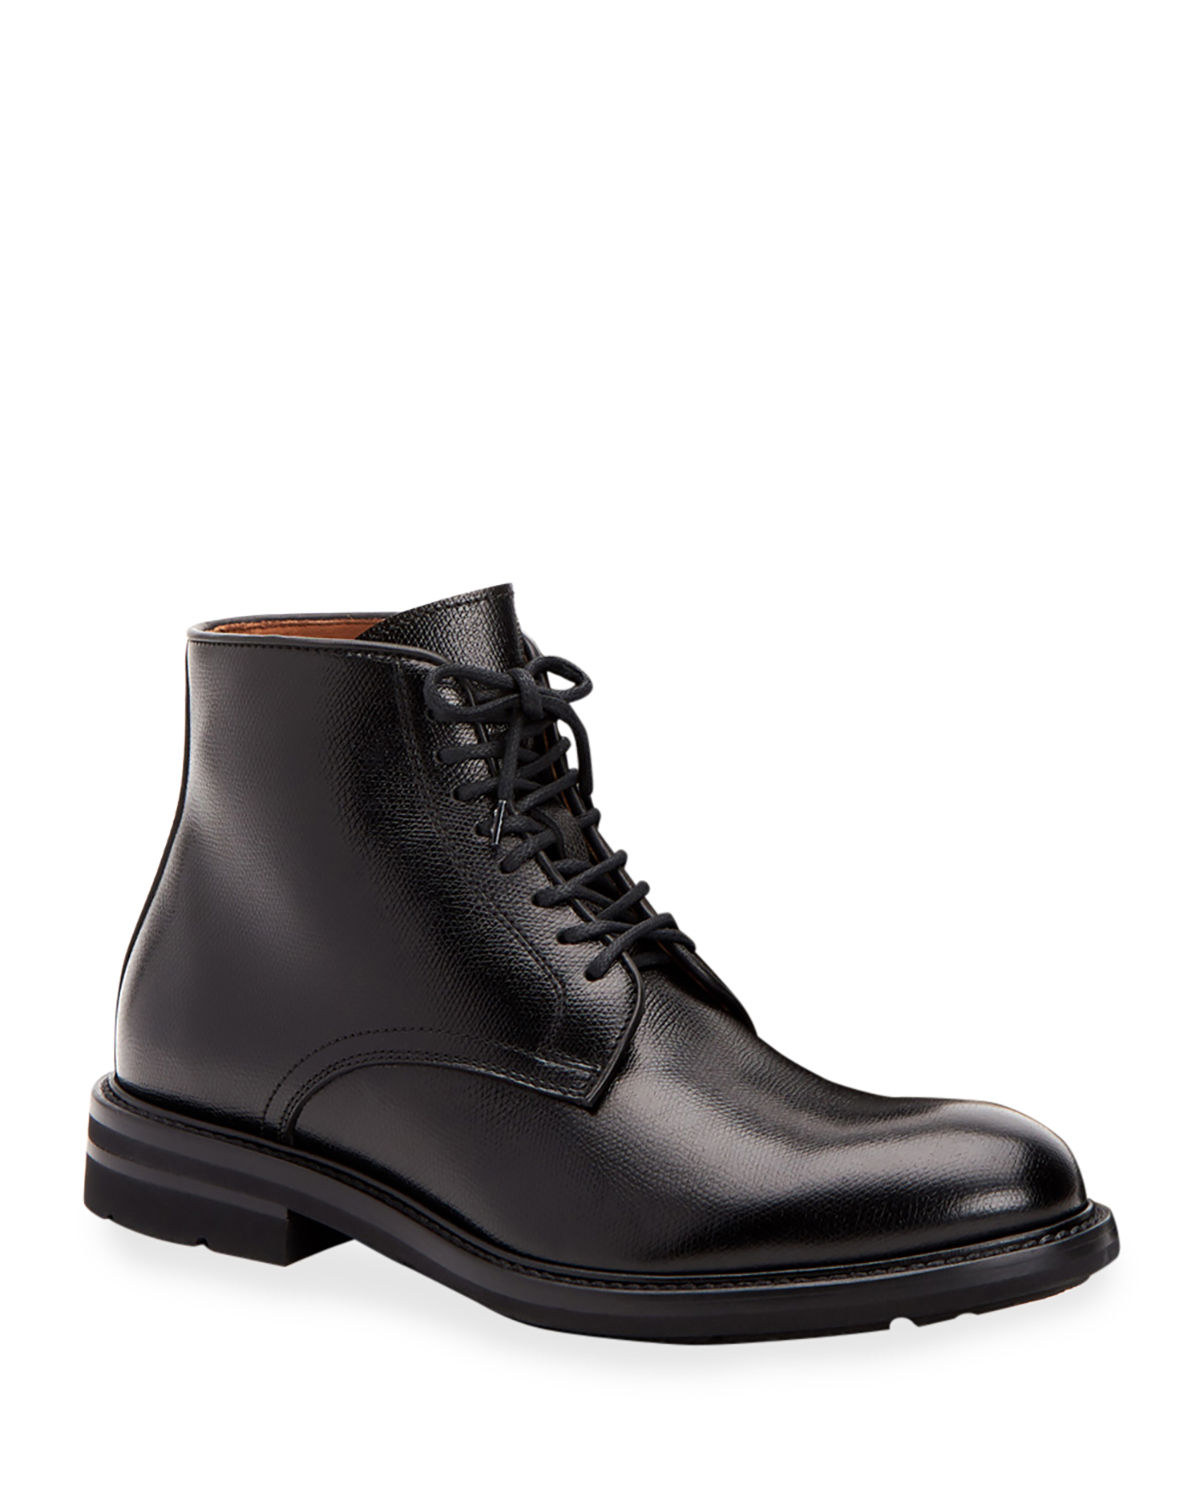 Men's Renzo Waterproof Leather Lace-Up Boots